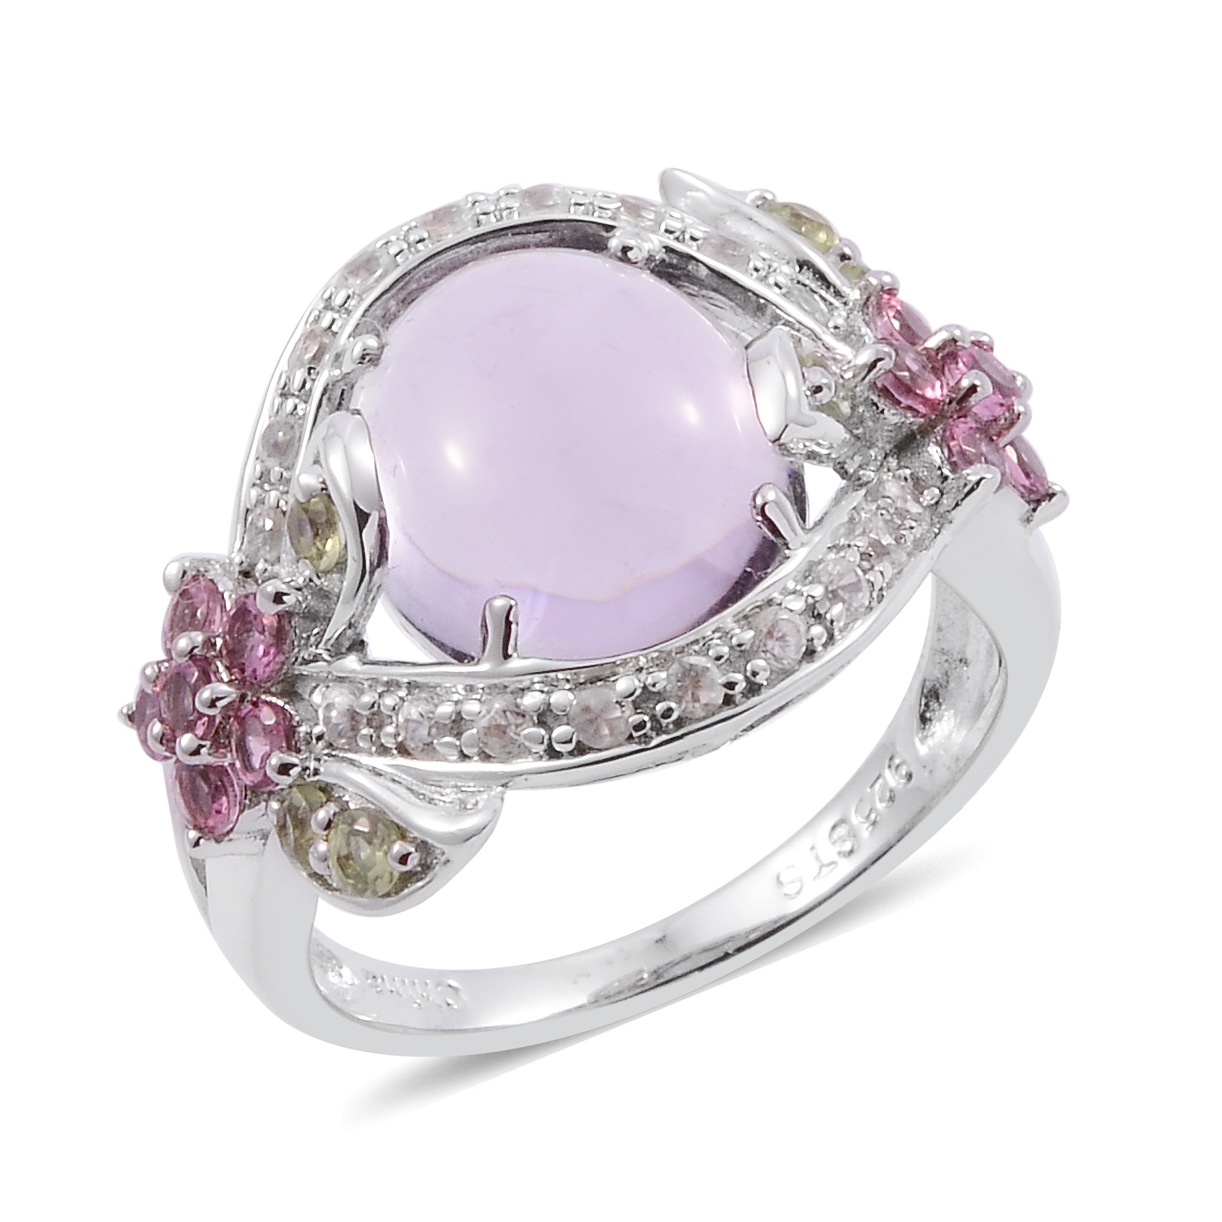 Pink Amethyst Multi Gemstone Platinum Plated 925 Sterling Silver Fashion Ring For Women Size 7 by Shop LC